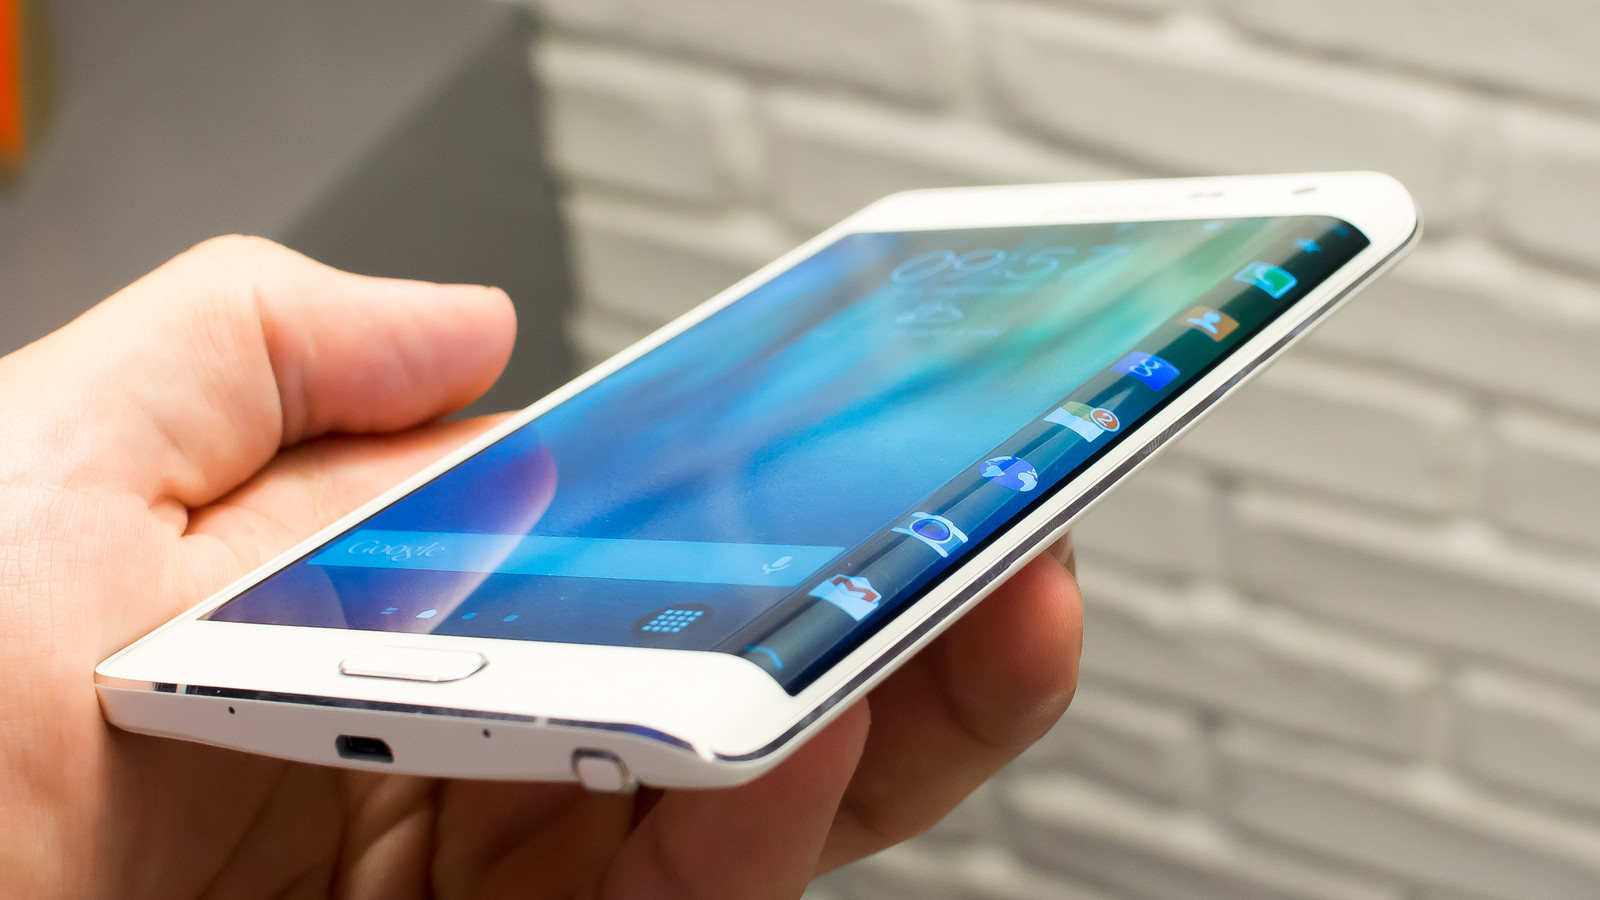 Galaxy Note Edge to be launched on October 23